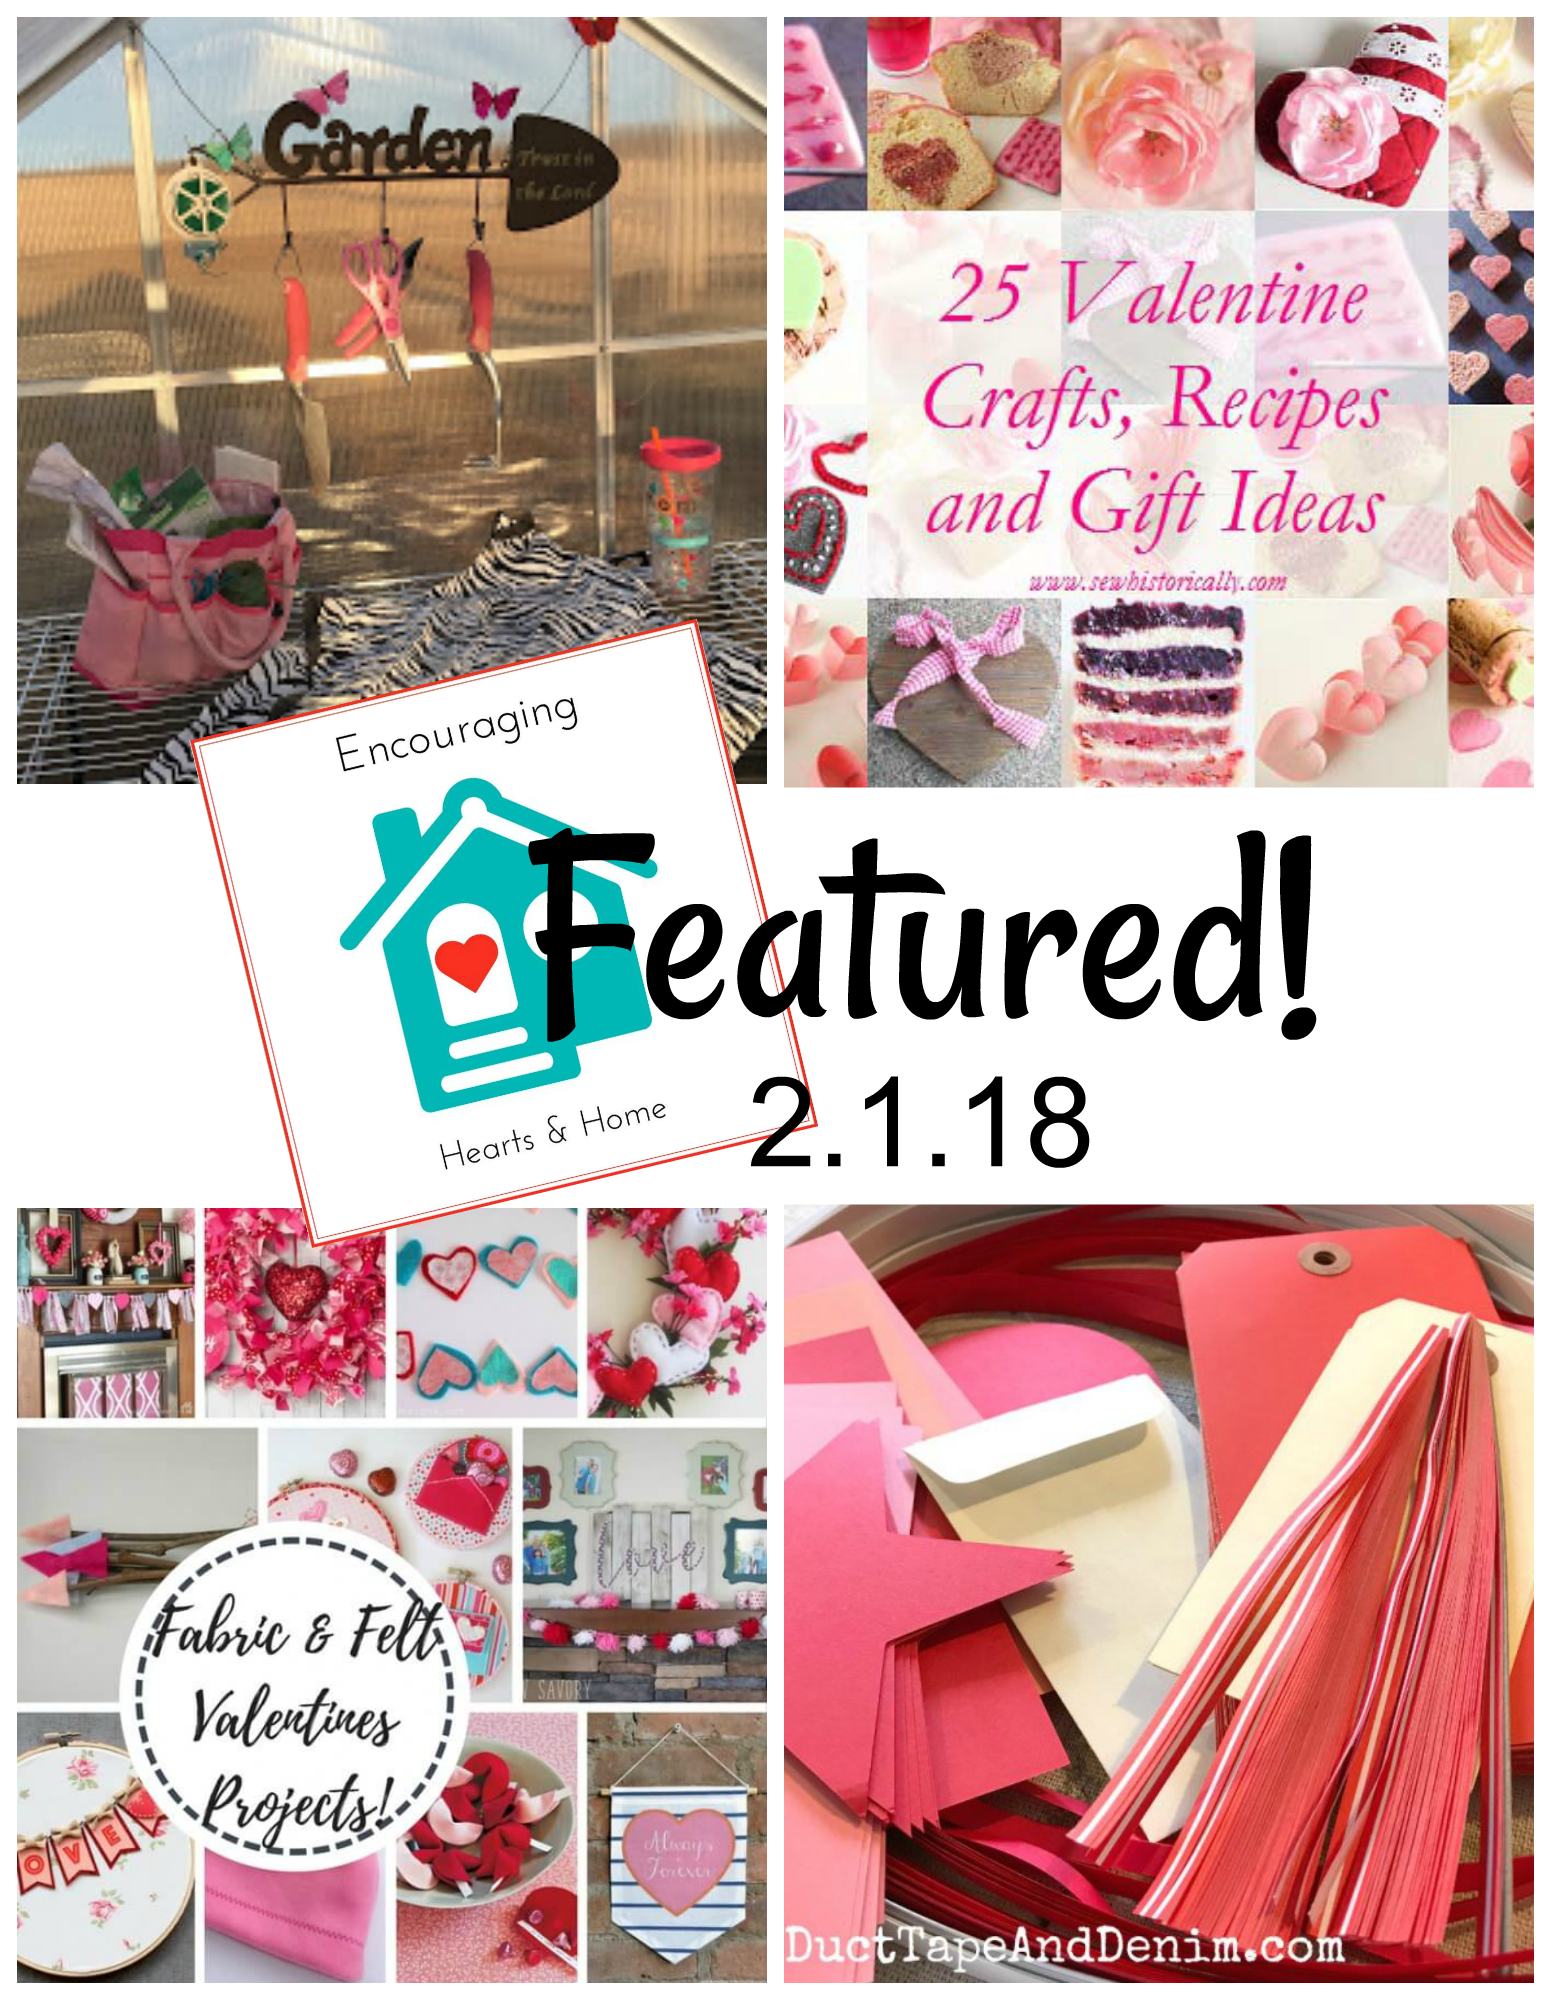 Encouraging Hearts & Home Blog Hop 2.1.18 Featured at ApronStringsOtherThings.com